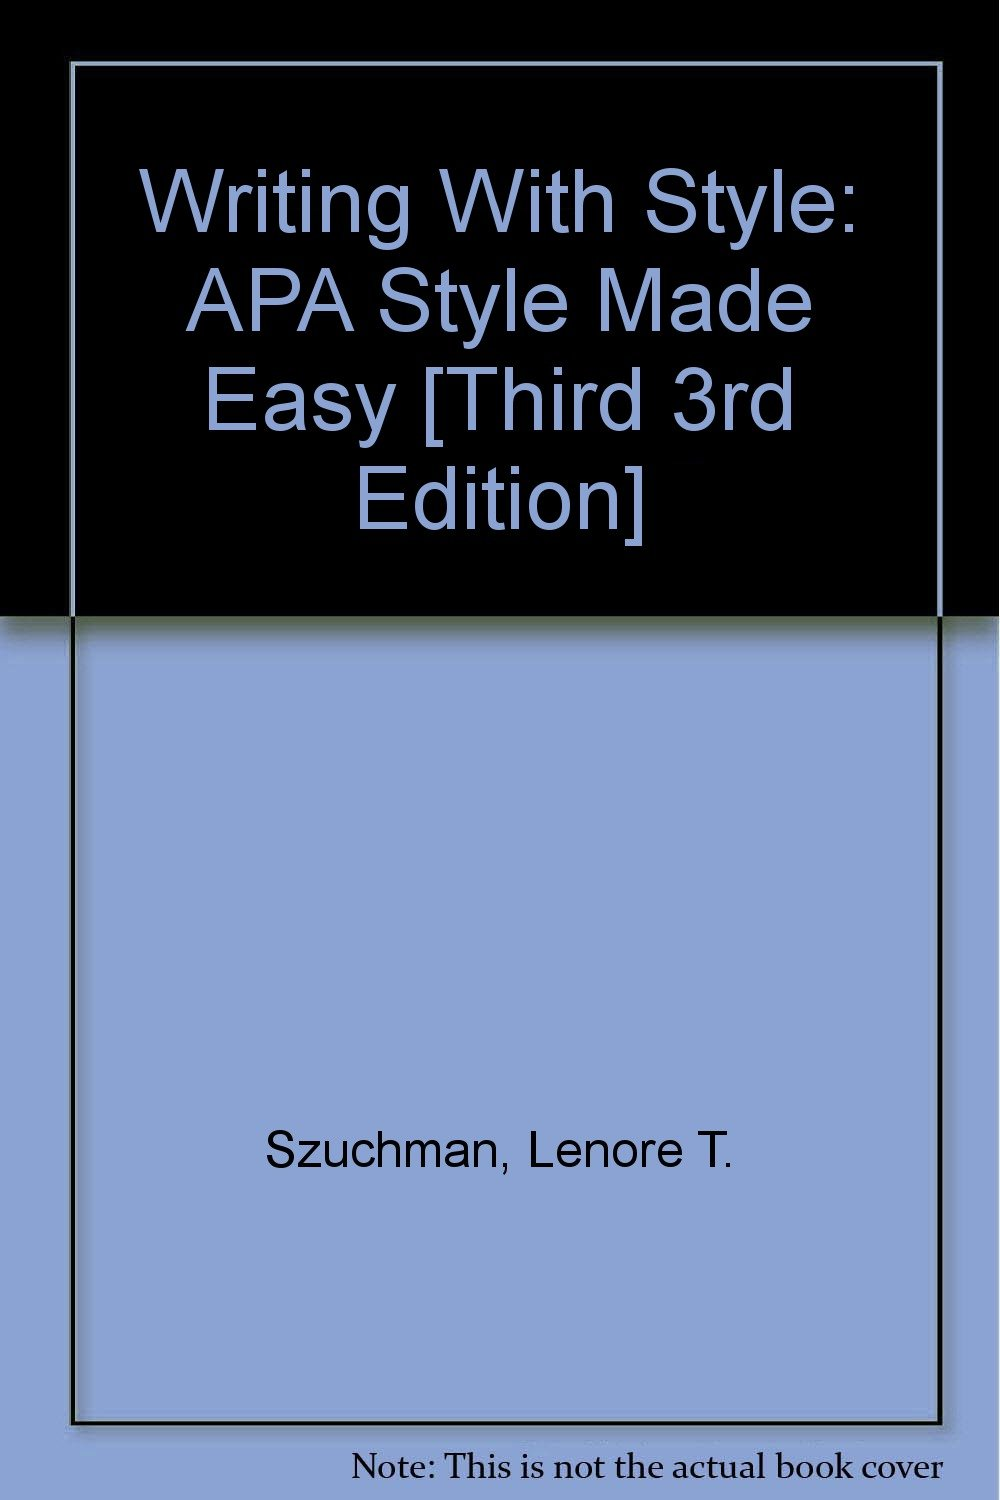 Writing With Style: APA Style Made Easy [Third 3rd Edition]: Lenore T.  Szuchman: Amazon.com: Books